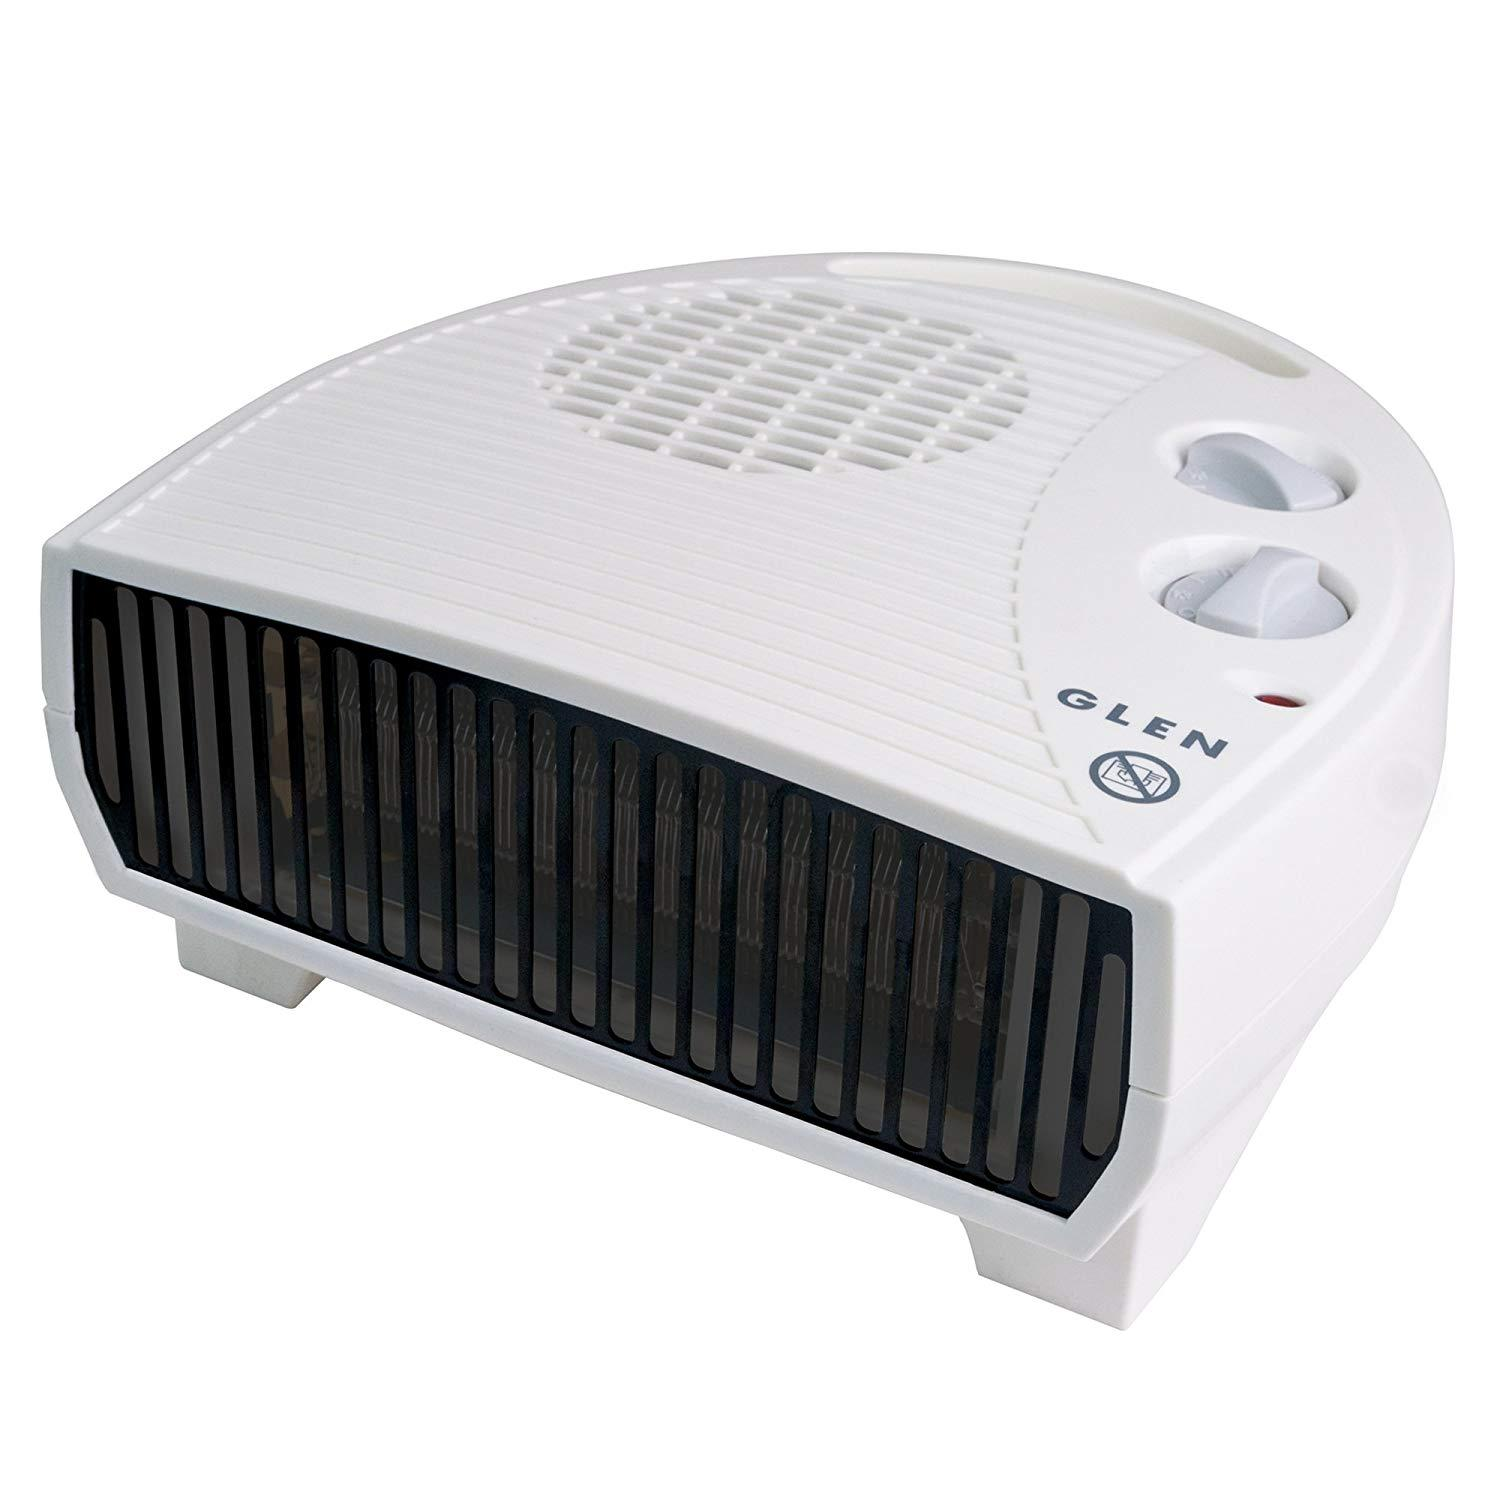 Buy Gas Electric Heaters Best Prices In Pakistan Also Room Heater You Can Portable Home Shop Adjustable Thermostat Automatic Temperature Control Fan